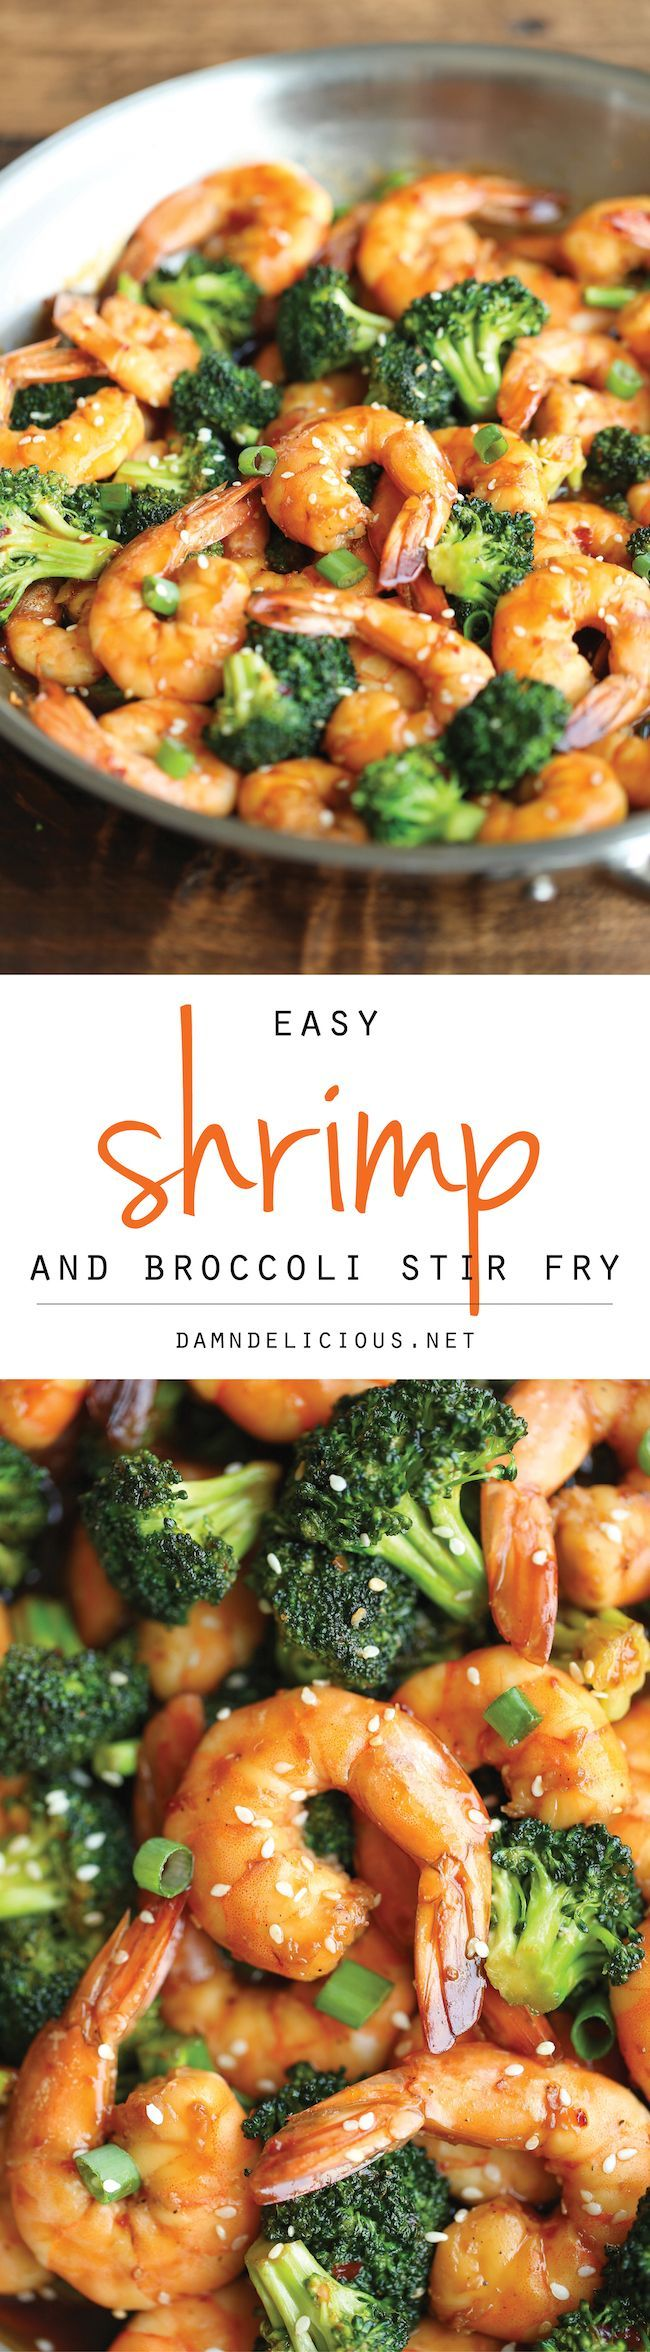 Easy Shrimp and Broccoli Stir Fry - The easiest stir fry you will ever make in just 20 min - it doesn't get easier (or quicker) than that! 287.3 calories.